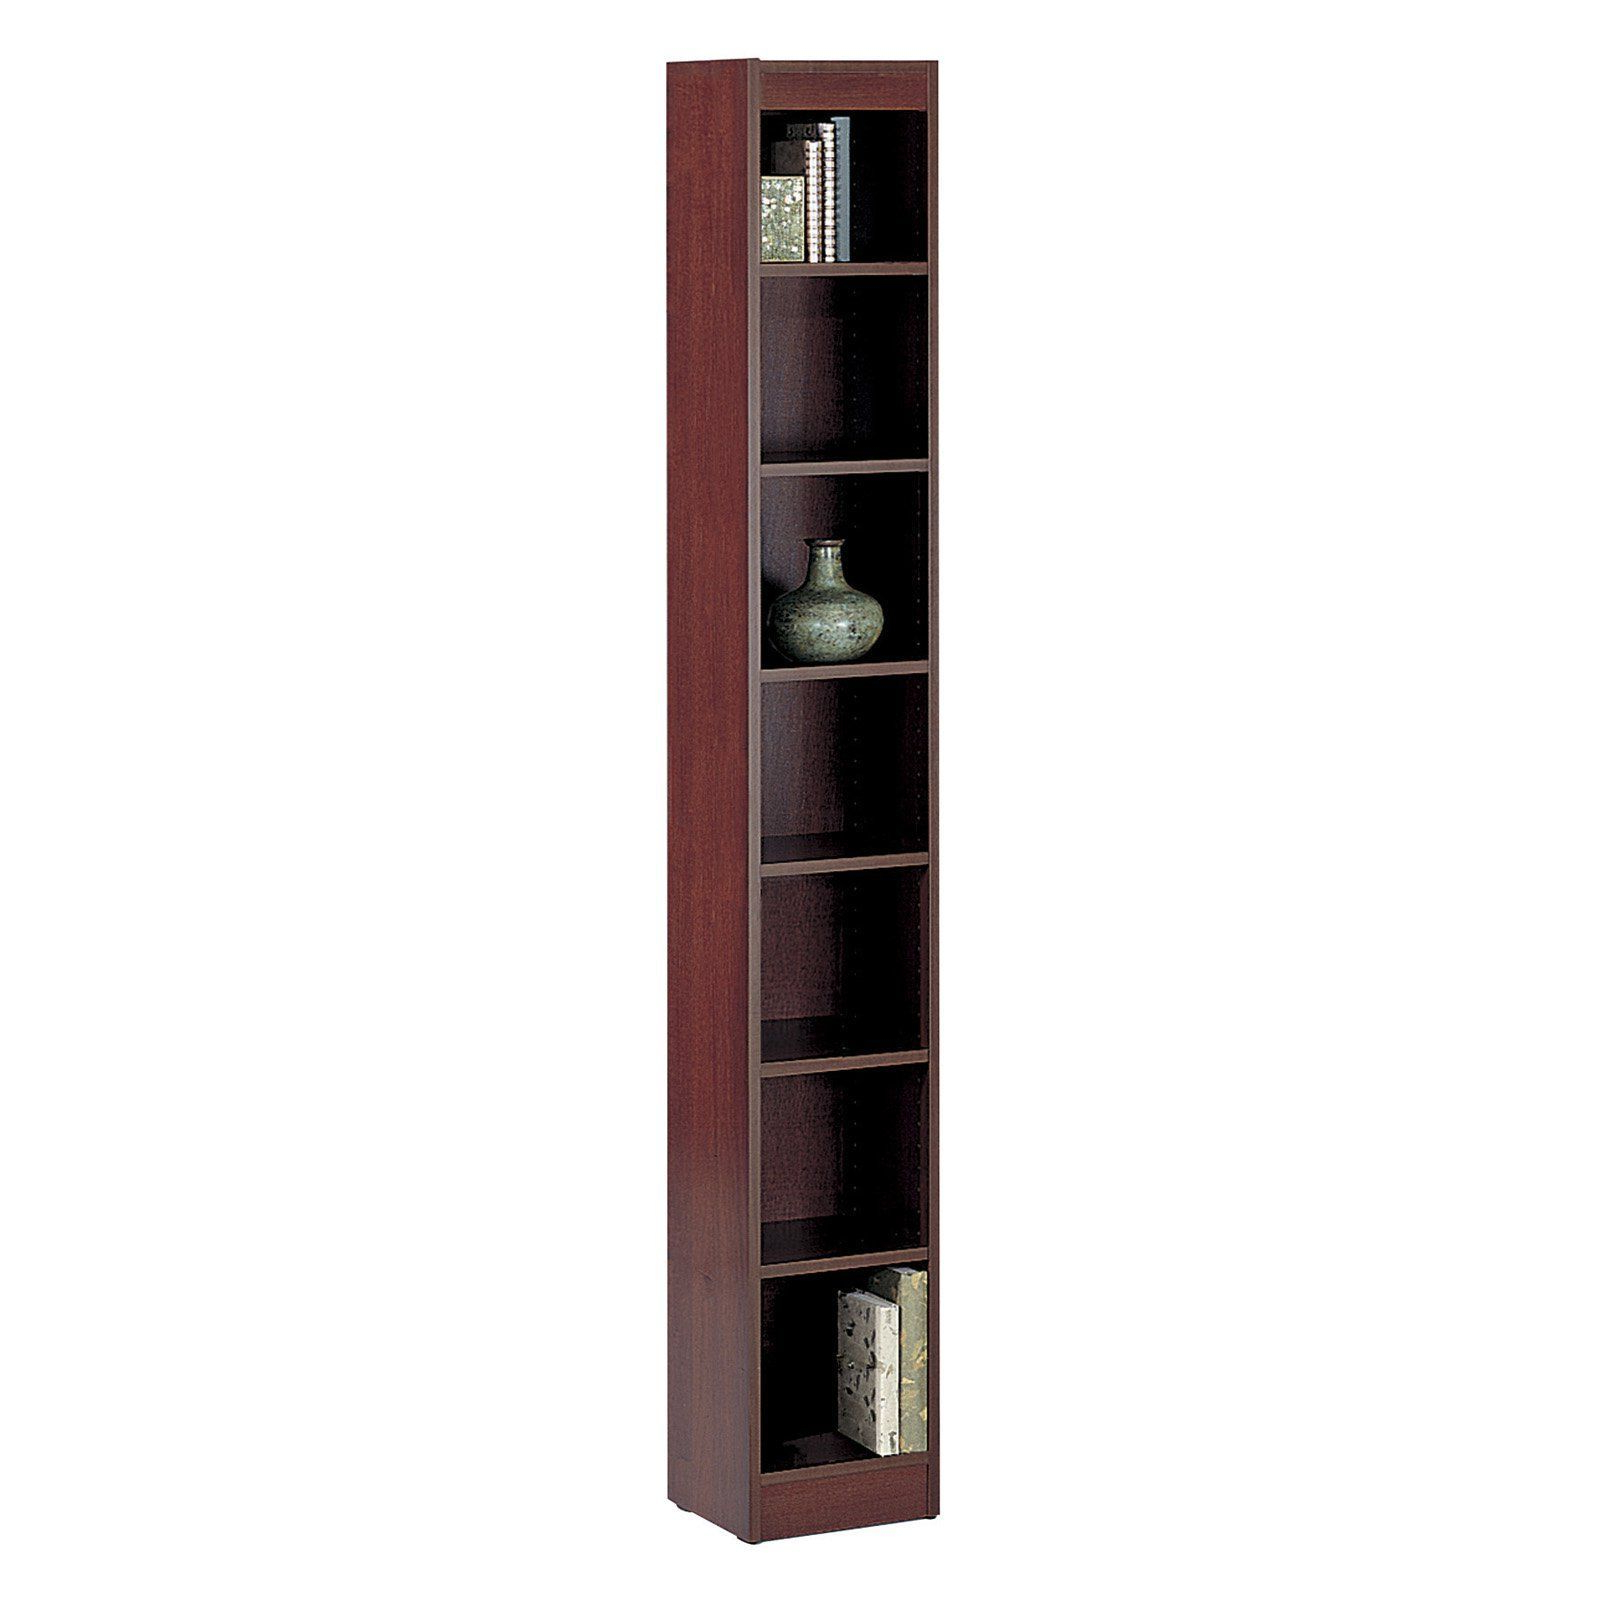 Preferred Have To Have It. Safco 7 Shelf Veneer Baby Bookcase – 12W In Intended For Narrow Profile Standard Cube Bookcases (Gallery 6 of 20)